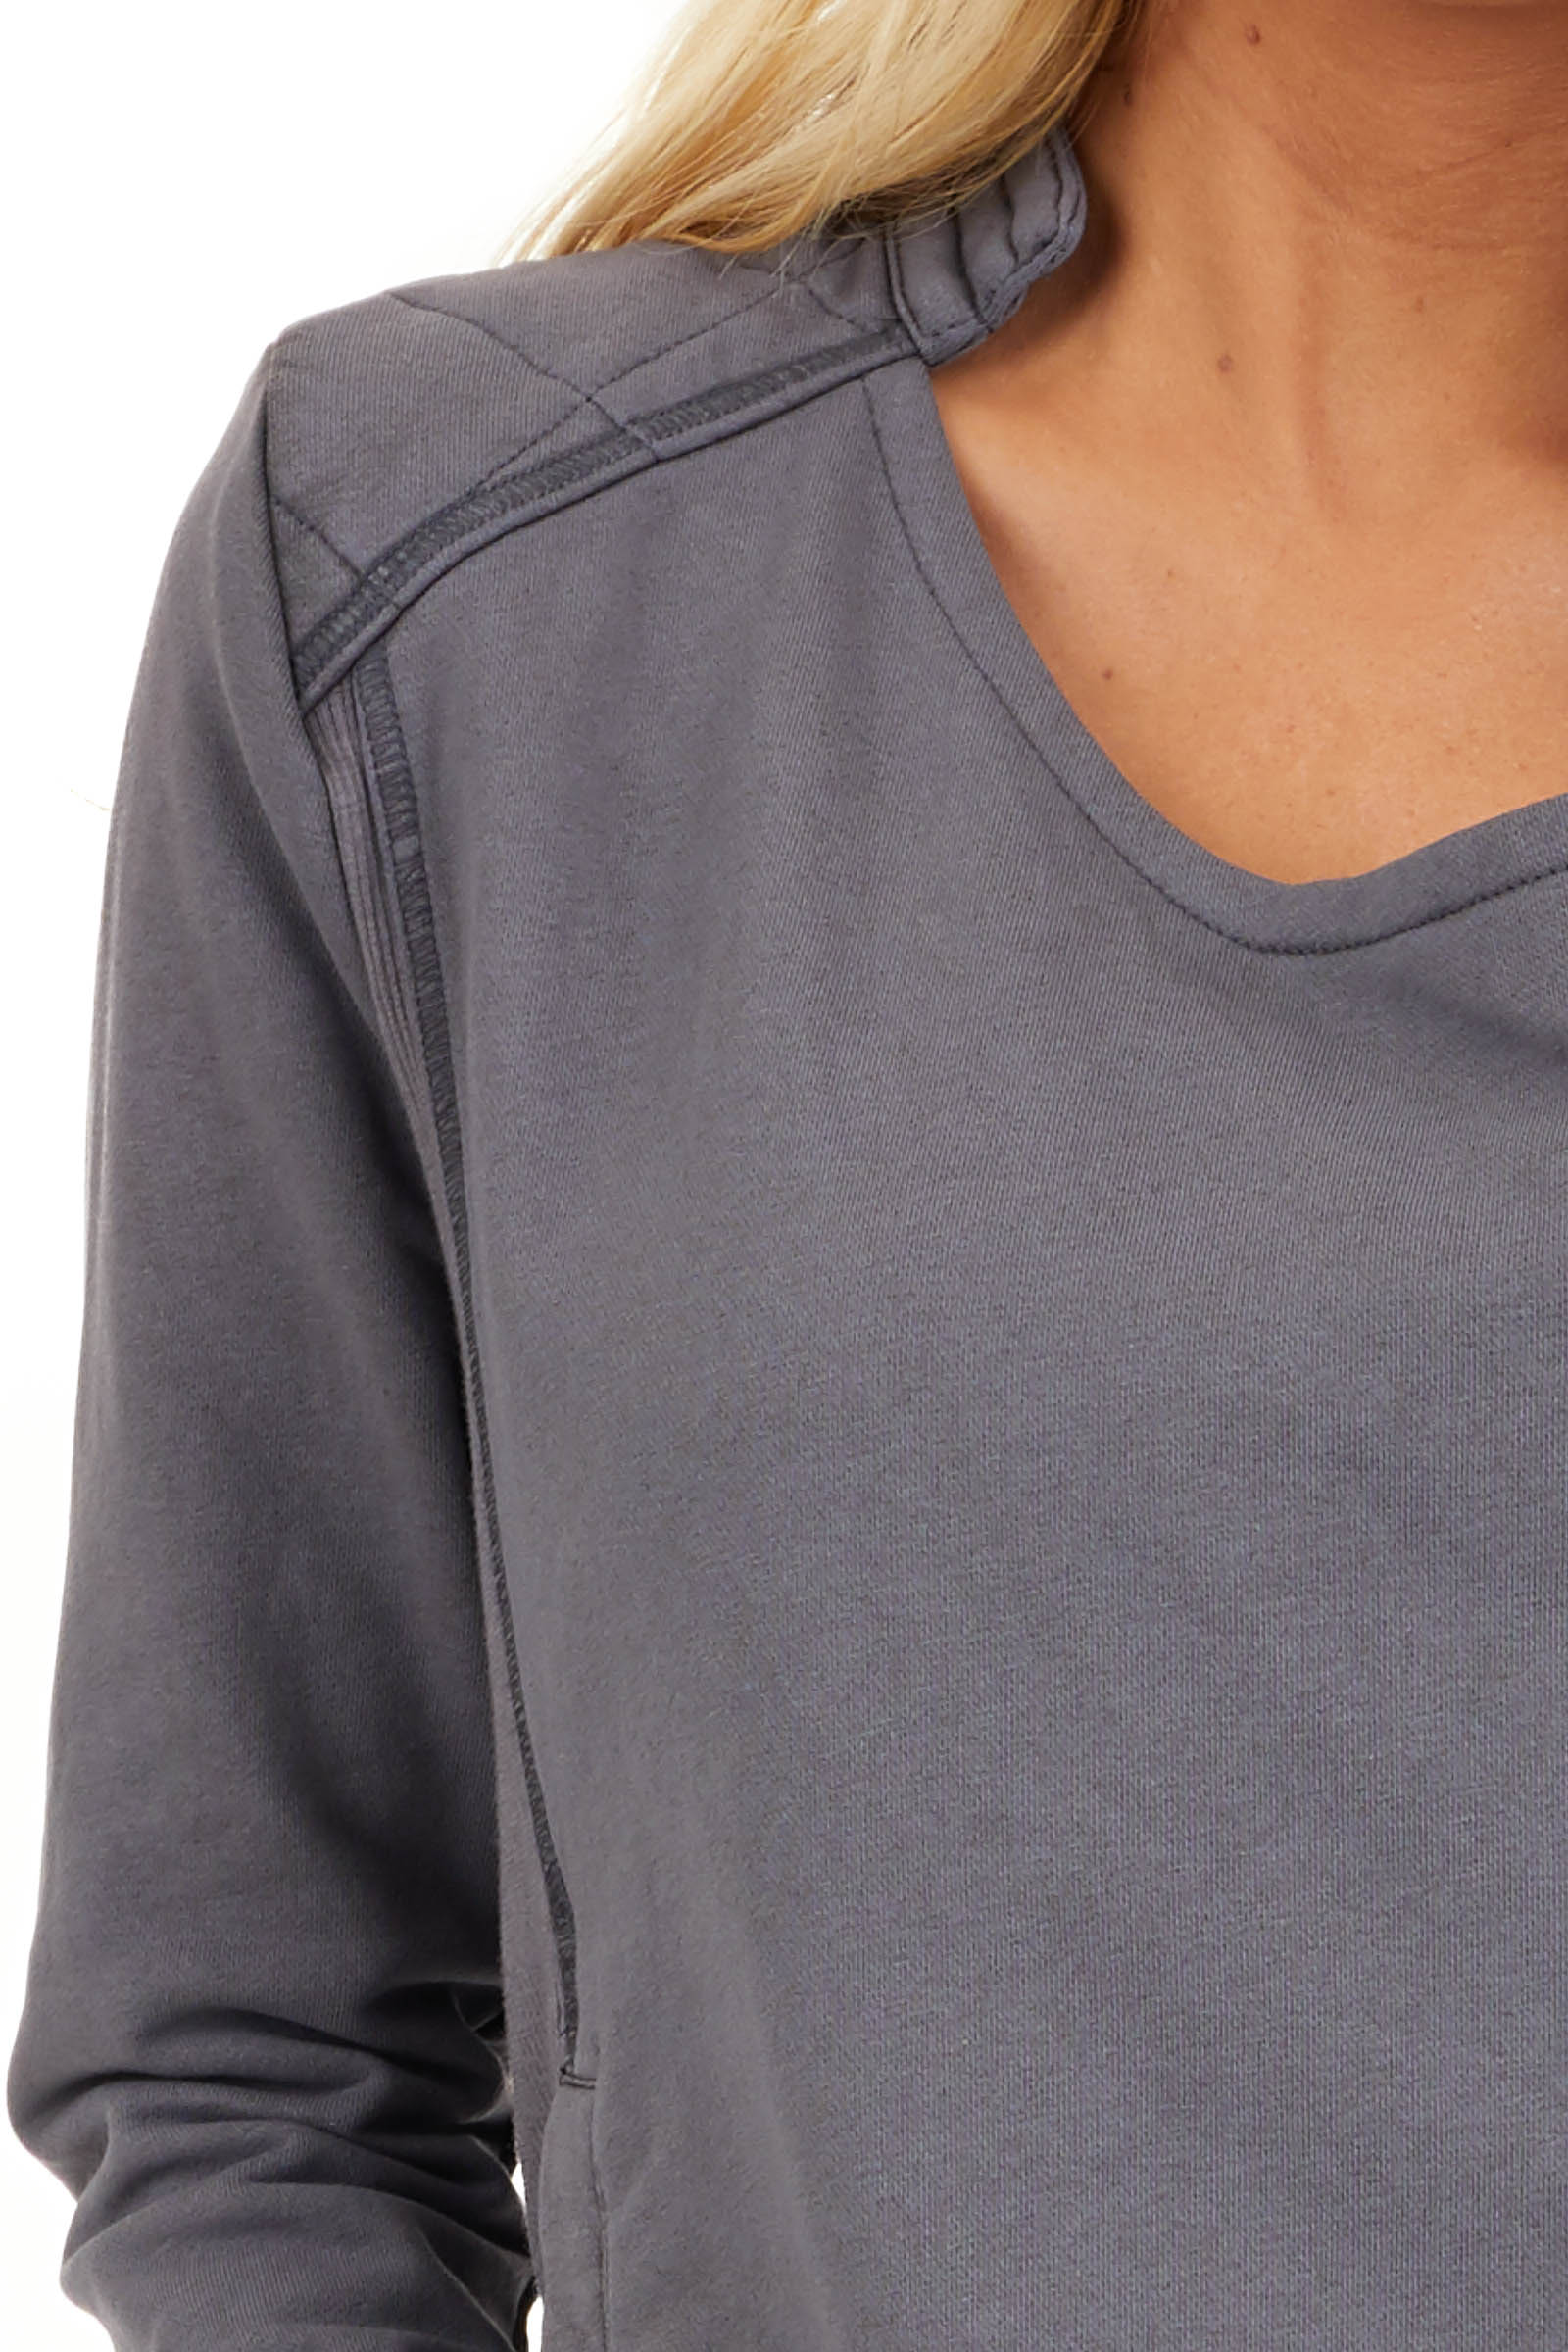 Charcoal Long Sleeve Zip Up Jacket with Quilted Detail detail